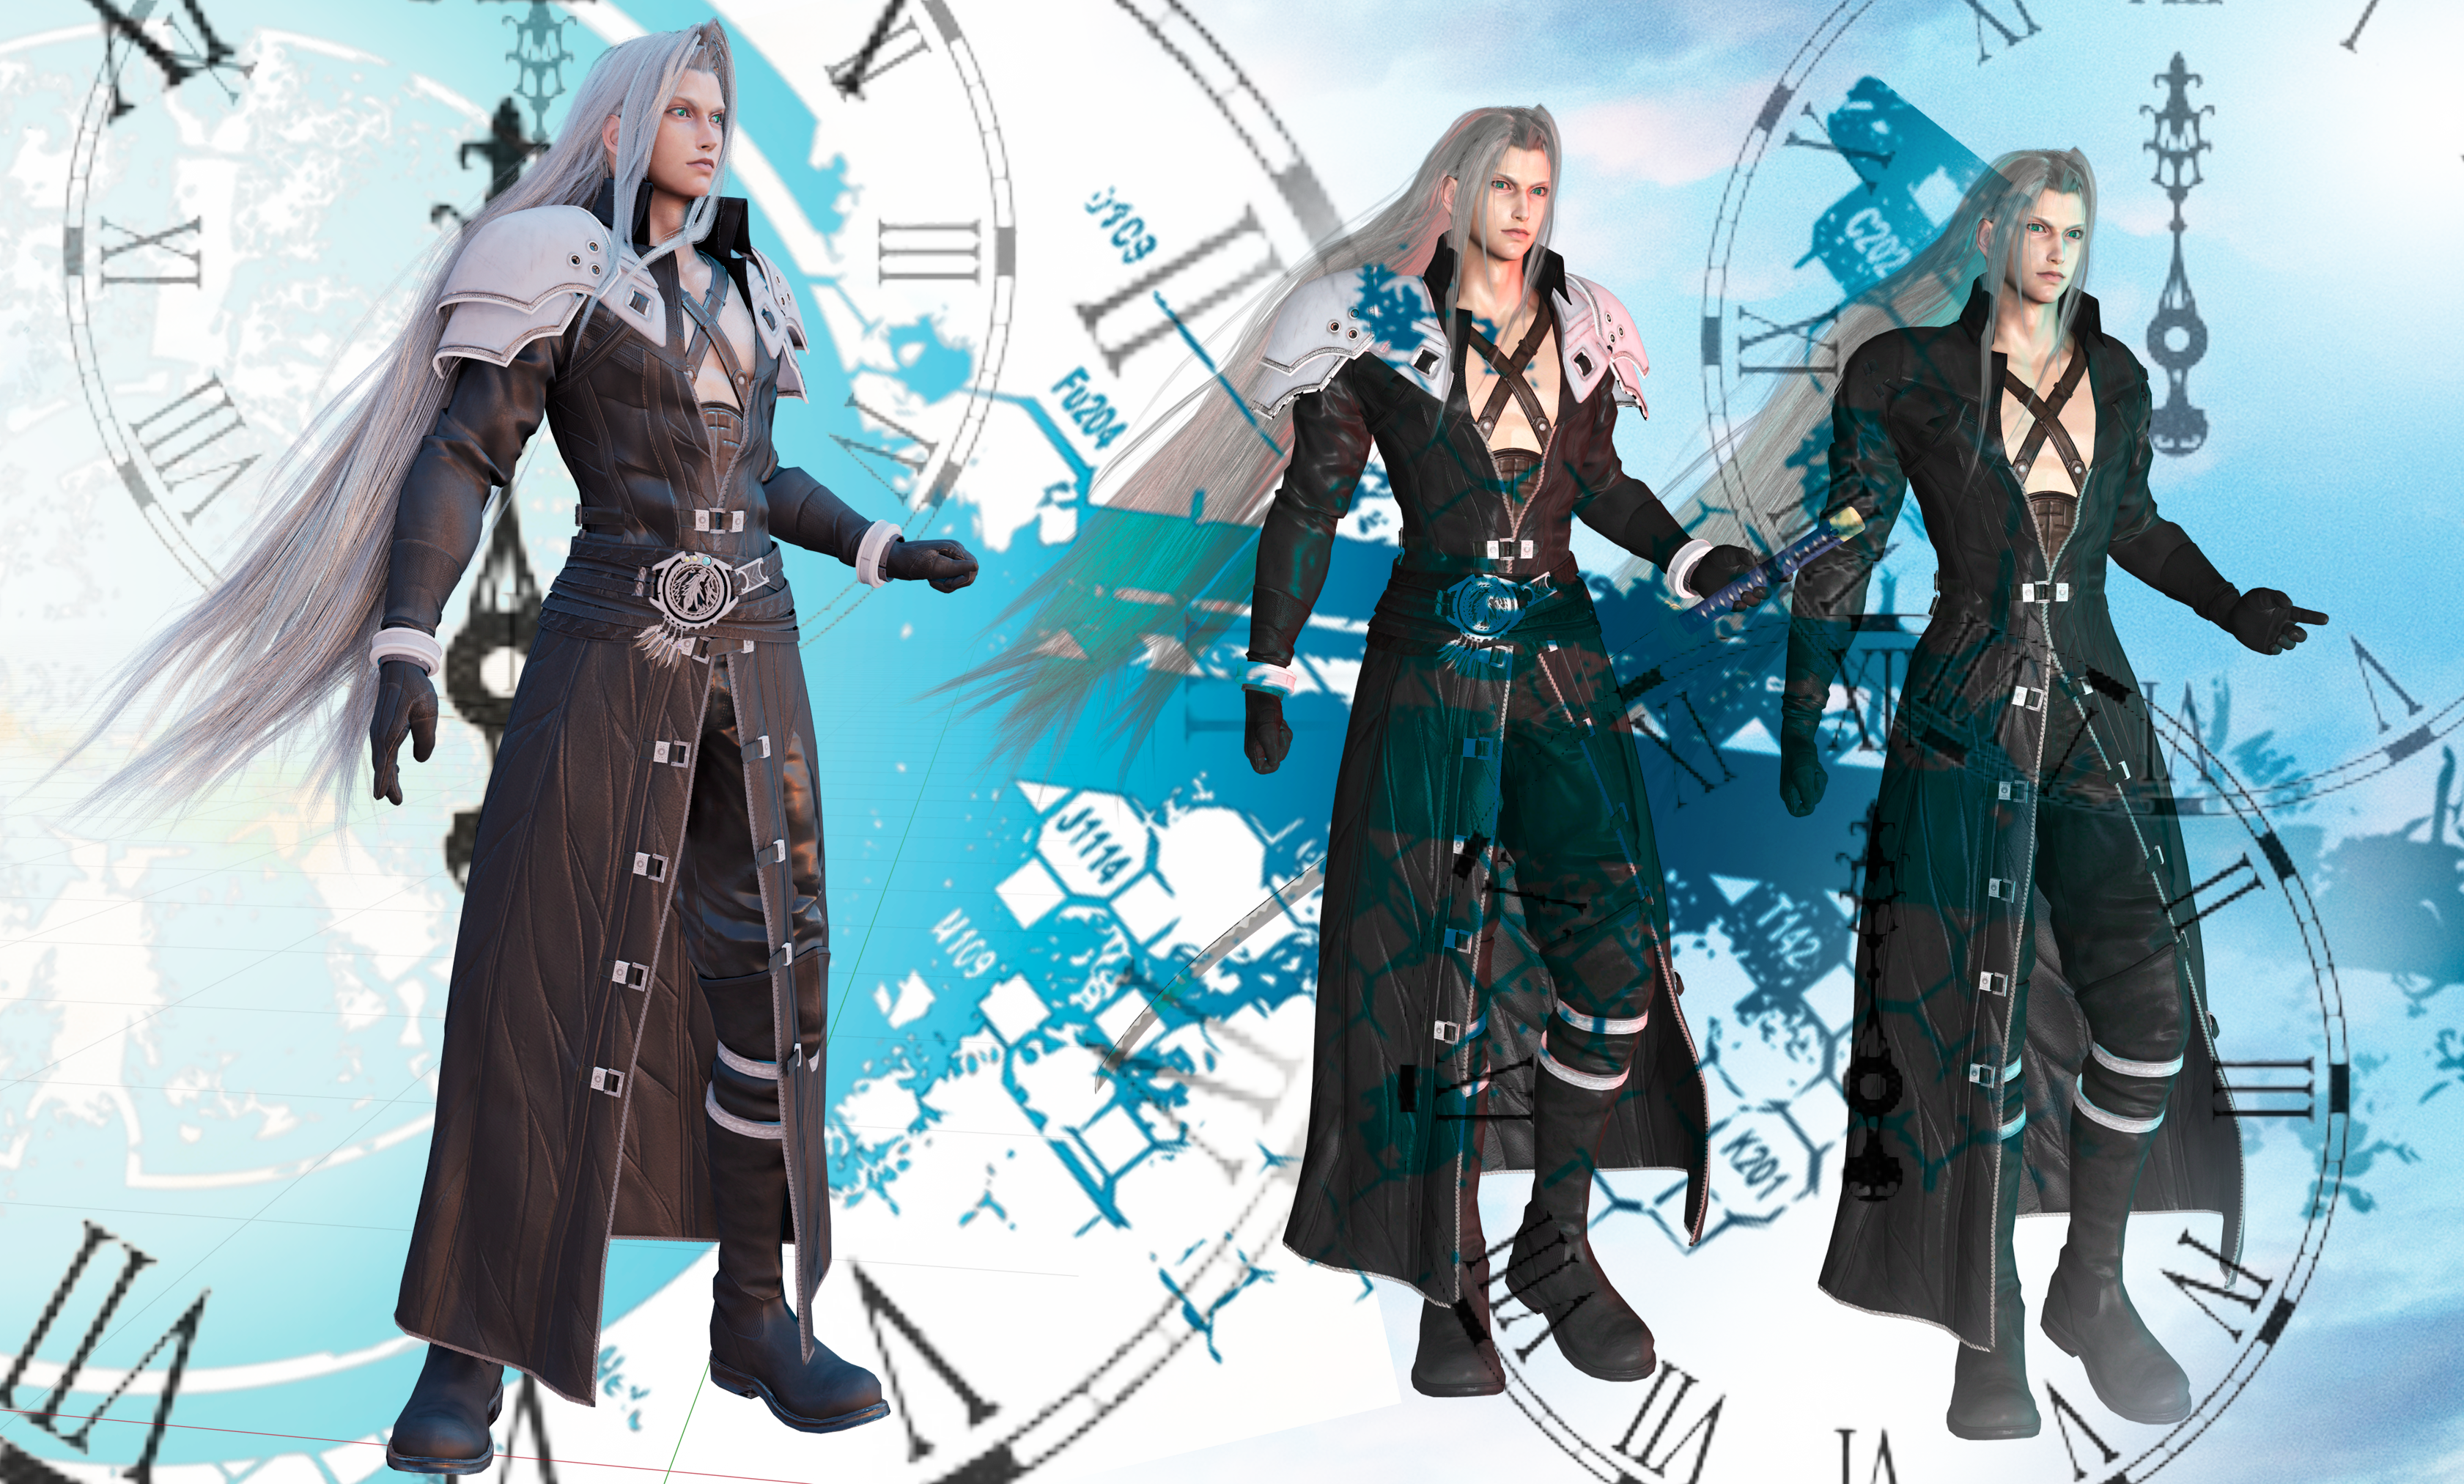 Final Fantasy 7 Remake Sephiroth By Risingalyx On Deviantart